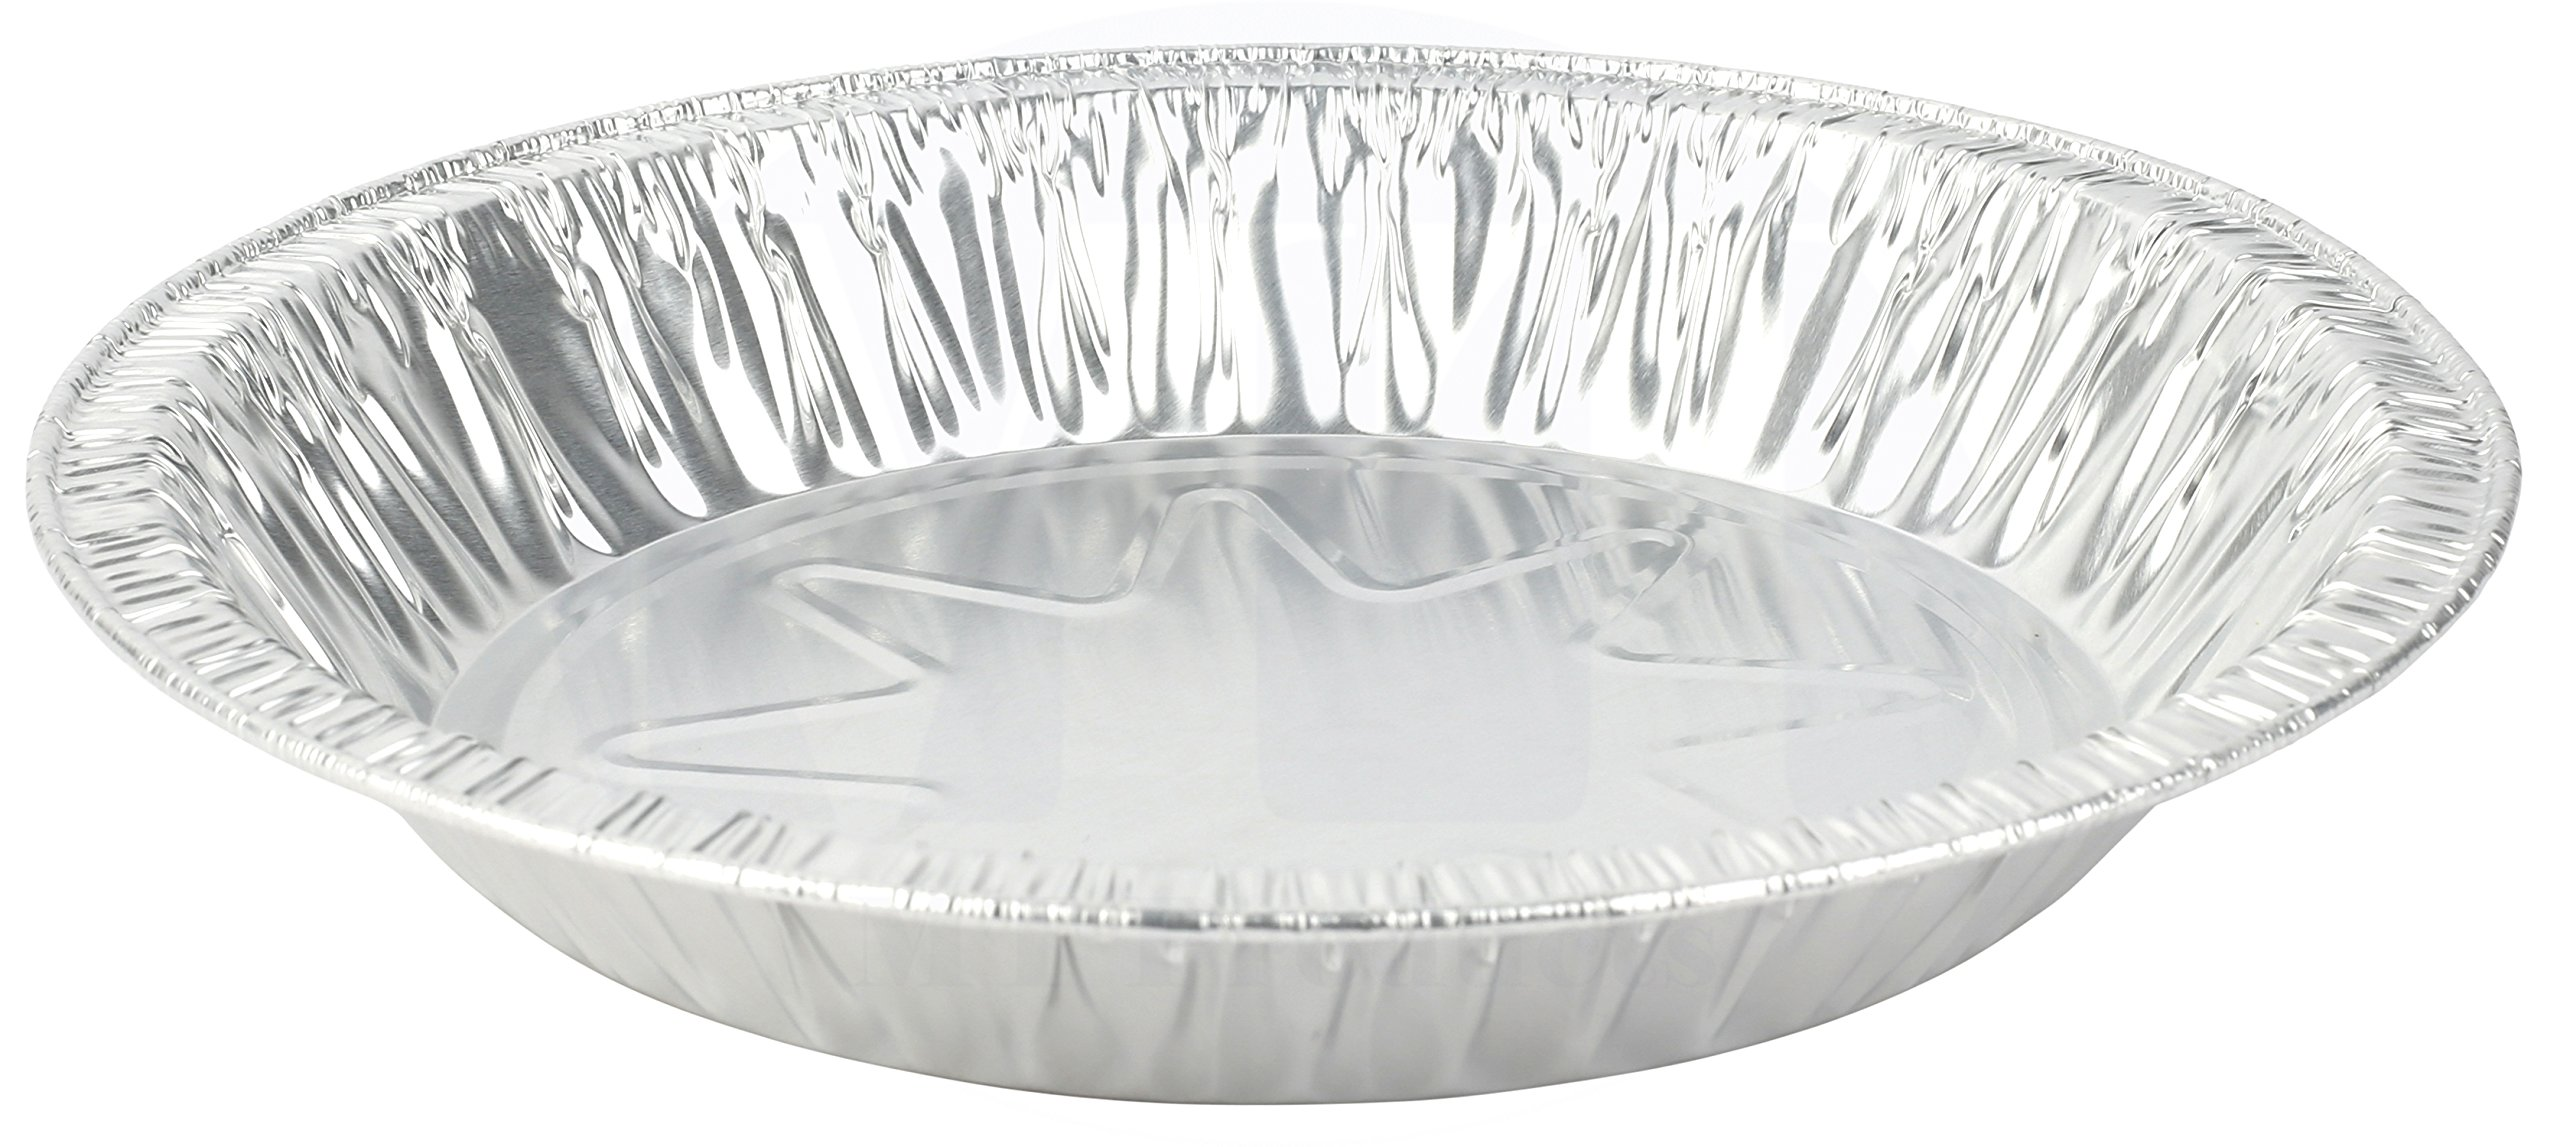 MT Products 8 Inch Outer Rim Disposable Aluminum Foil Tart/Pie Pan 1.25'' Deep - Inside Measures 7 inches x 1.25 inches -(Thicker 45 Gauge) (35 Pieces)